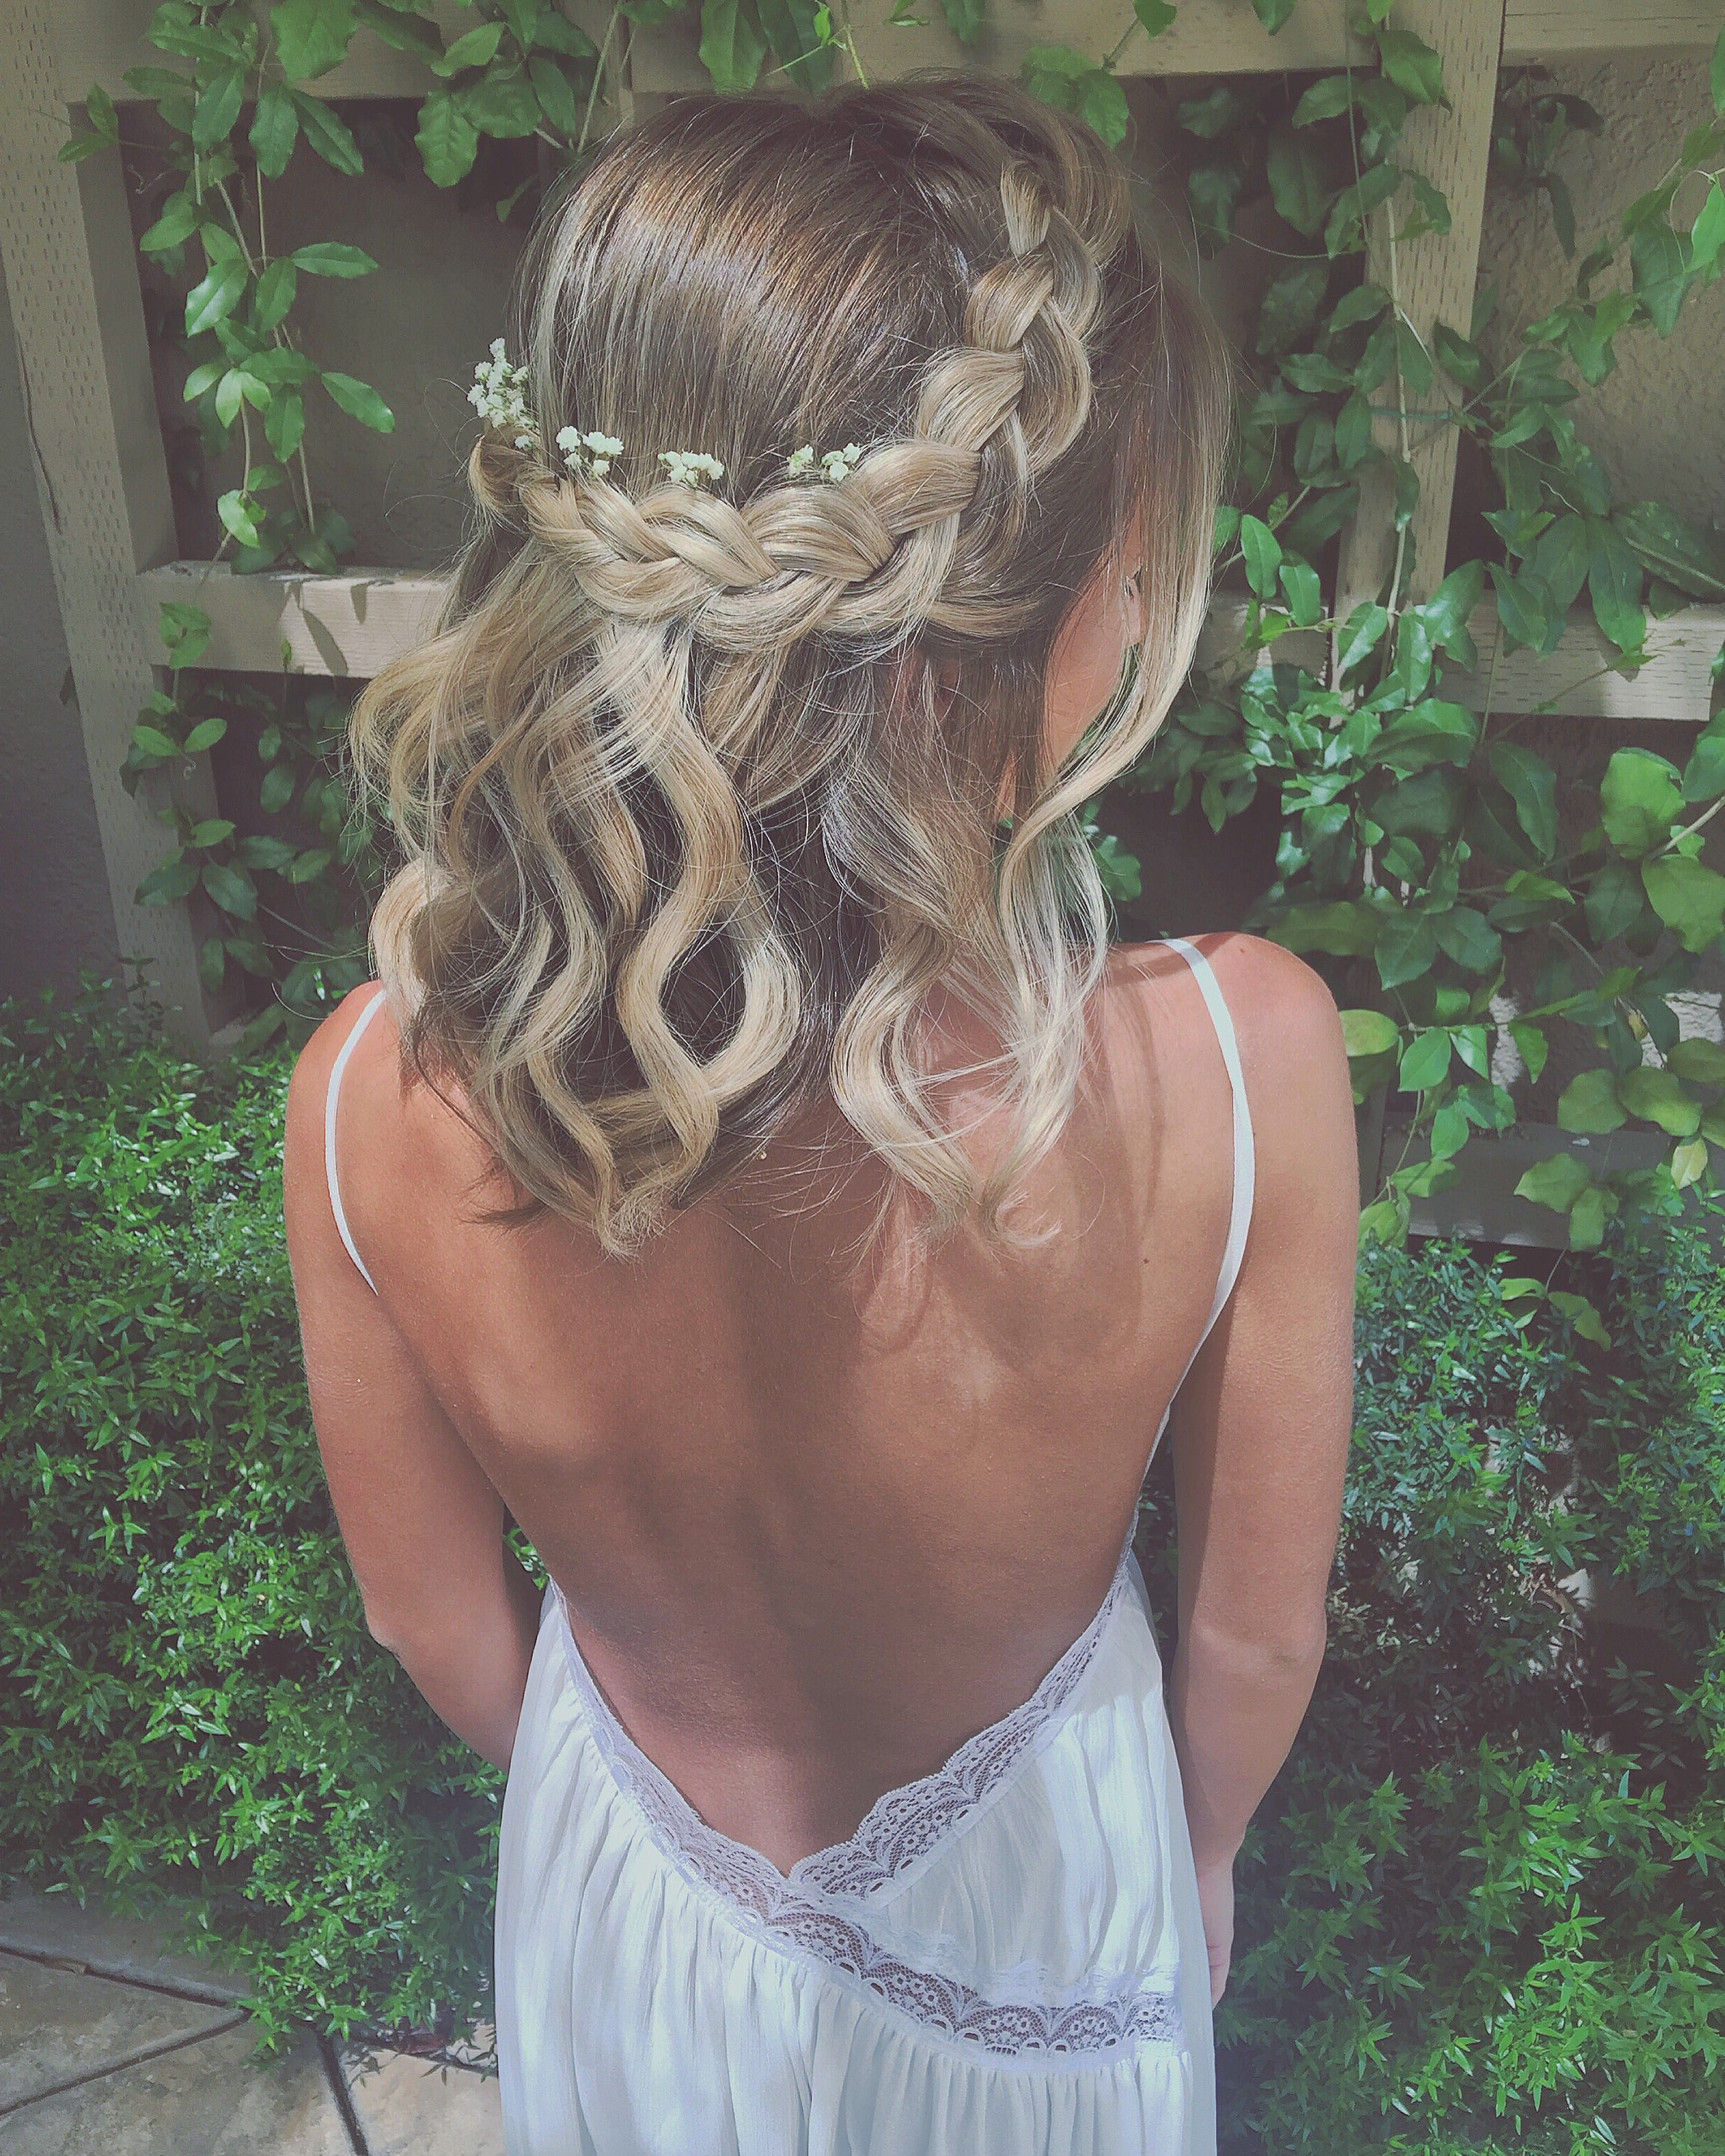 Widely Used Short Spiral Waves Hairstyles For Brides Intended For 45 Undercut Hairstyles With Hair Tattoos For Women (View 17 of 20)